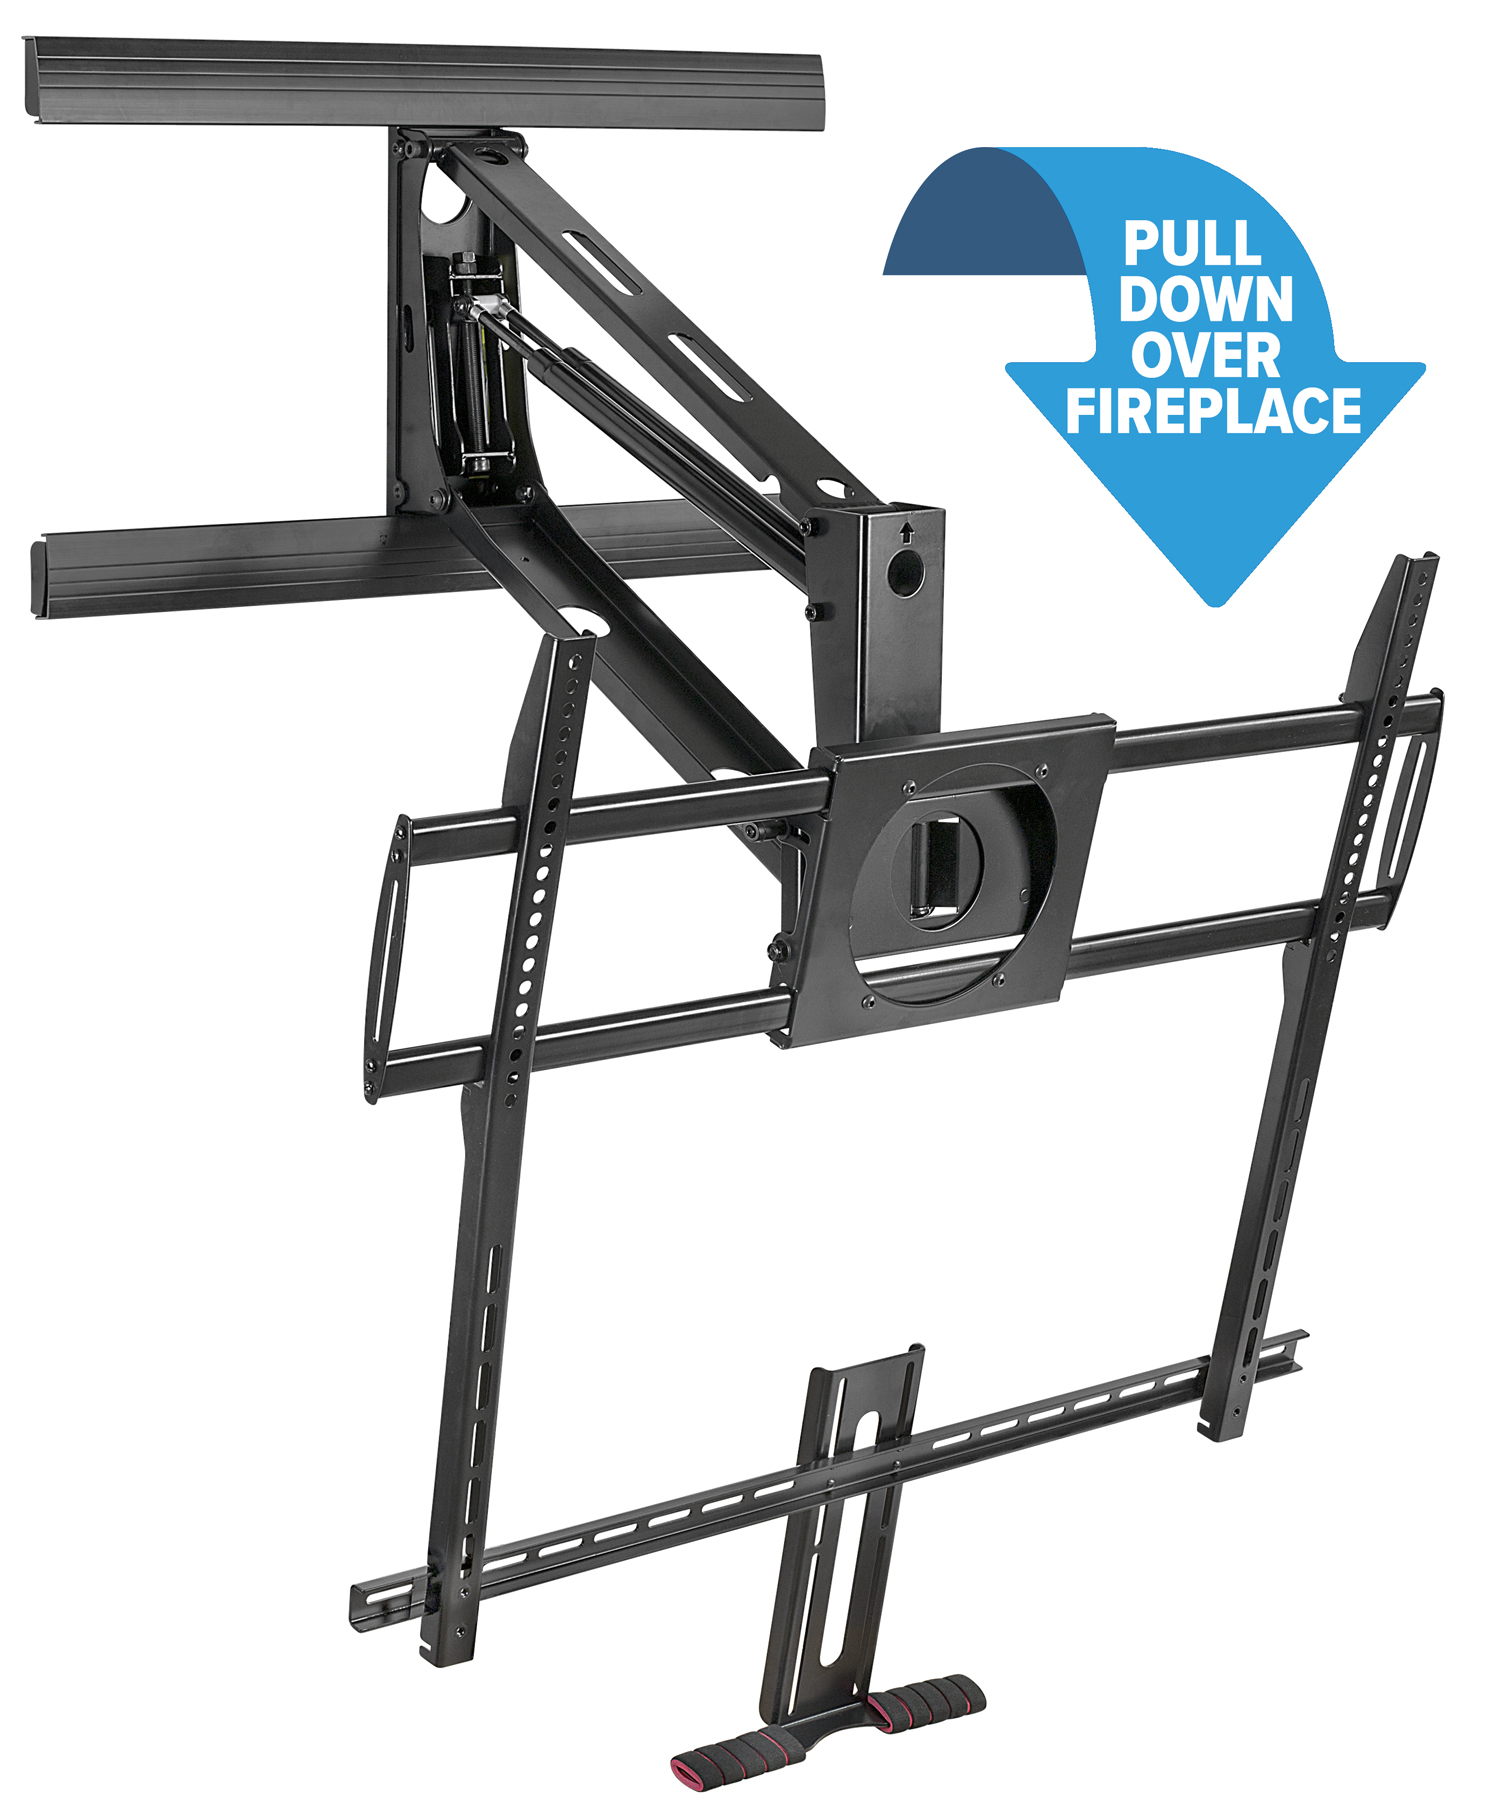 Mount It! Fireplace TV Mount, Heavy Duty Mantel TV Mount Pull Down Mounting Bracket With Height Adjustment, Fits 50 100 Inch TVs Black, Brand: